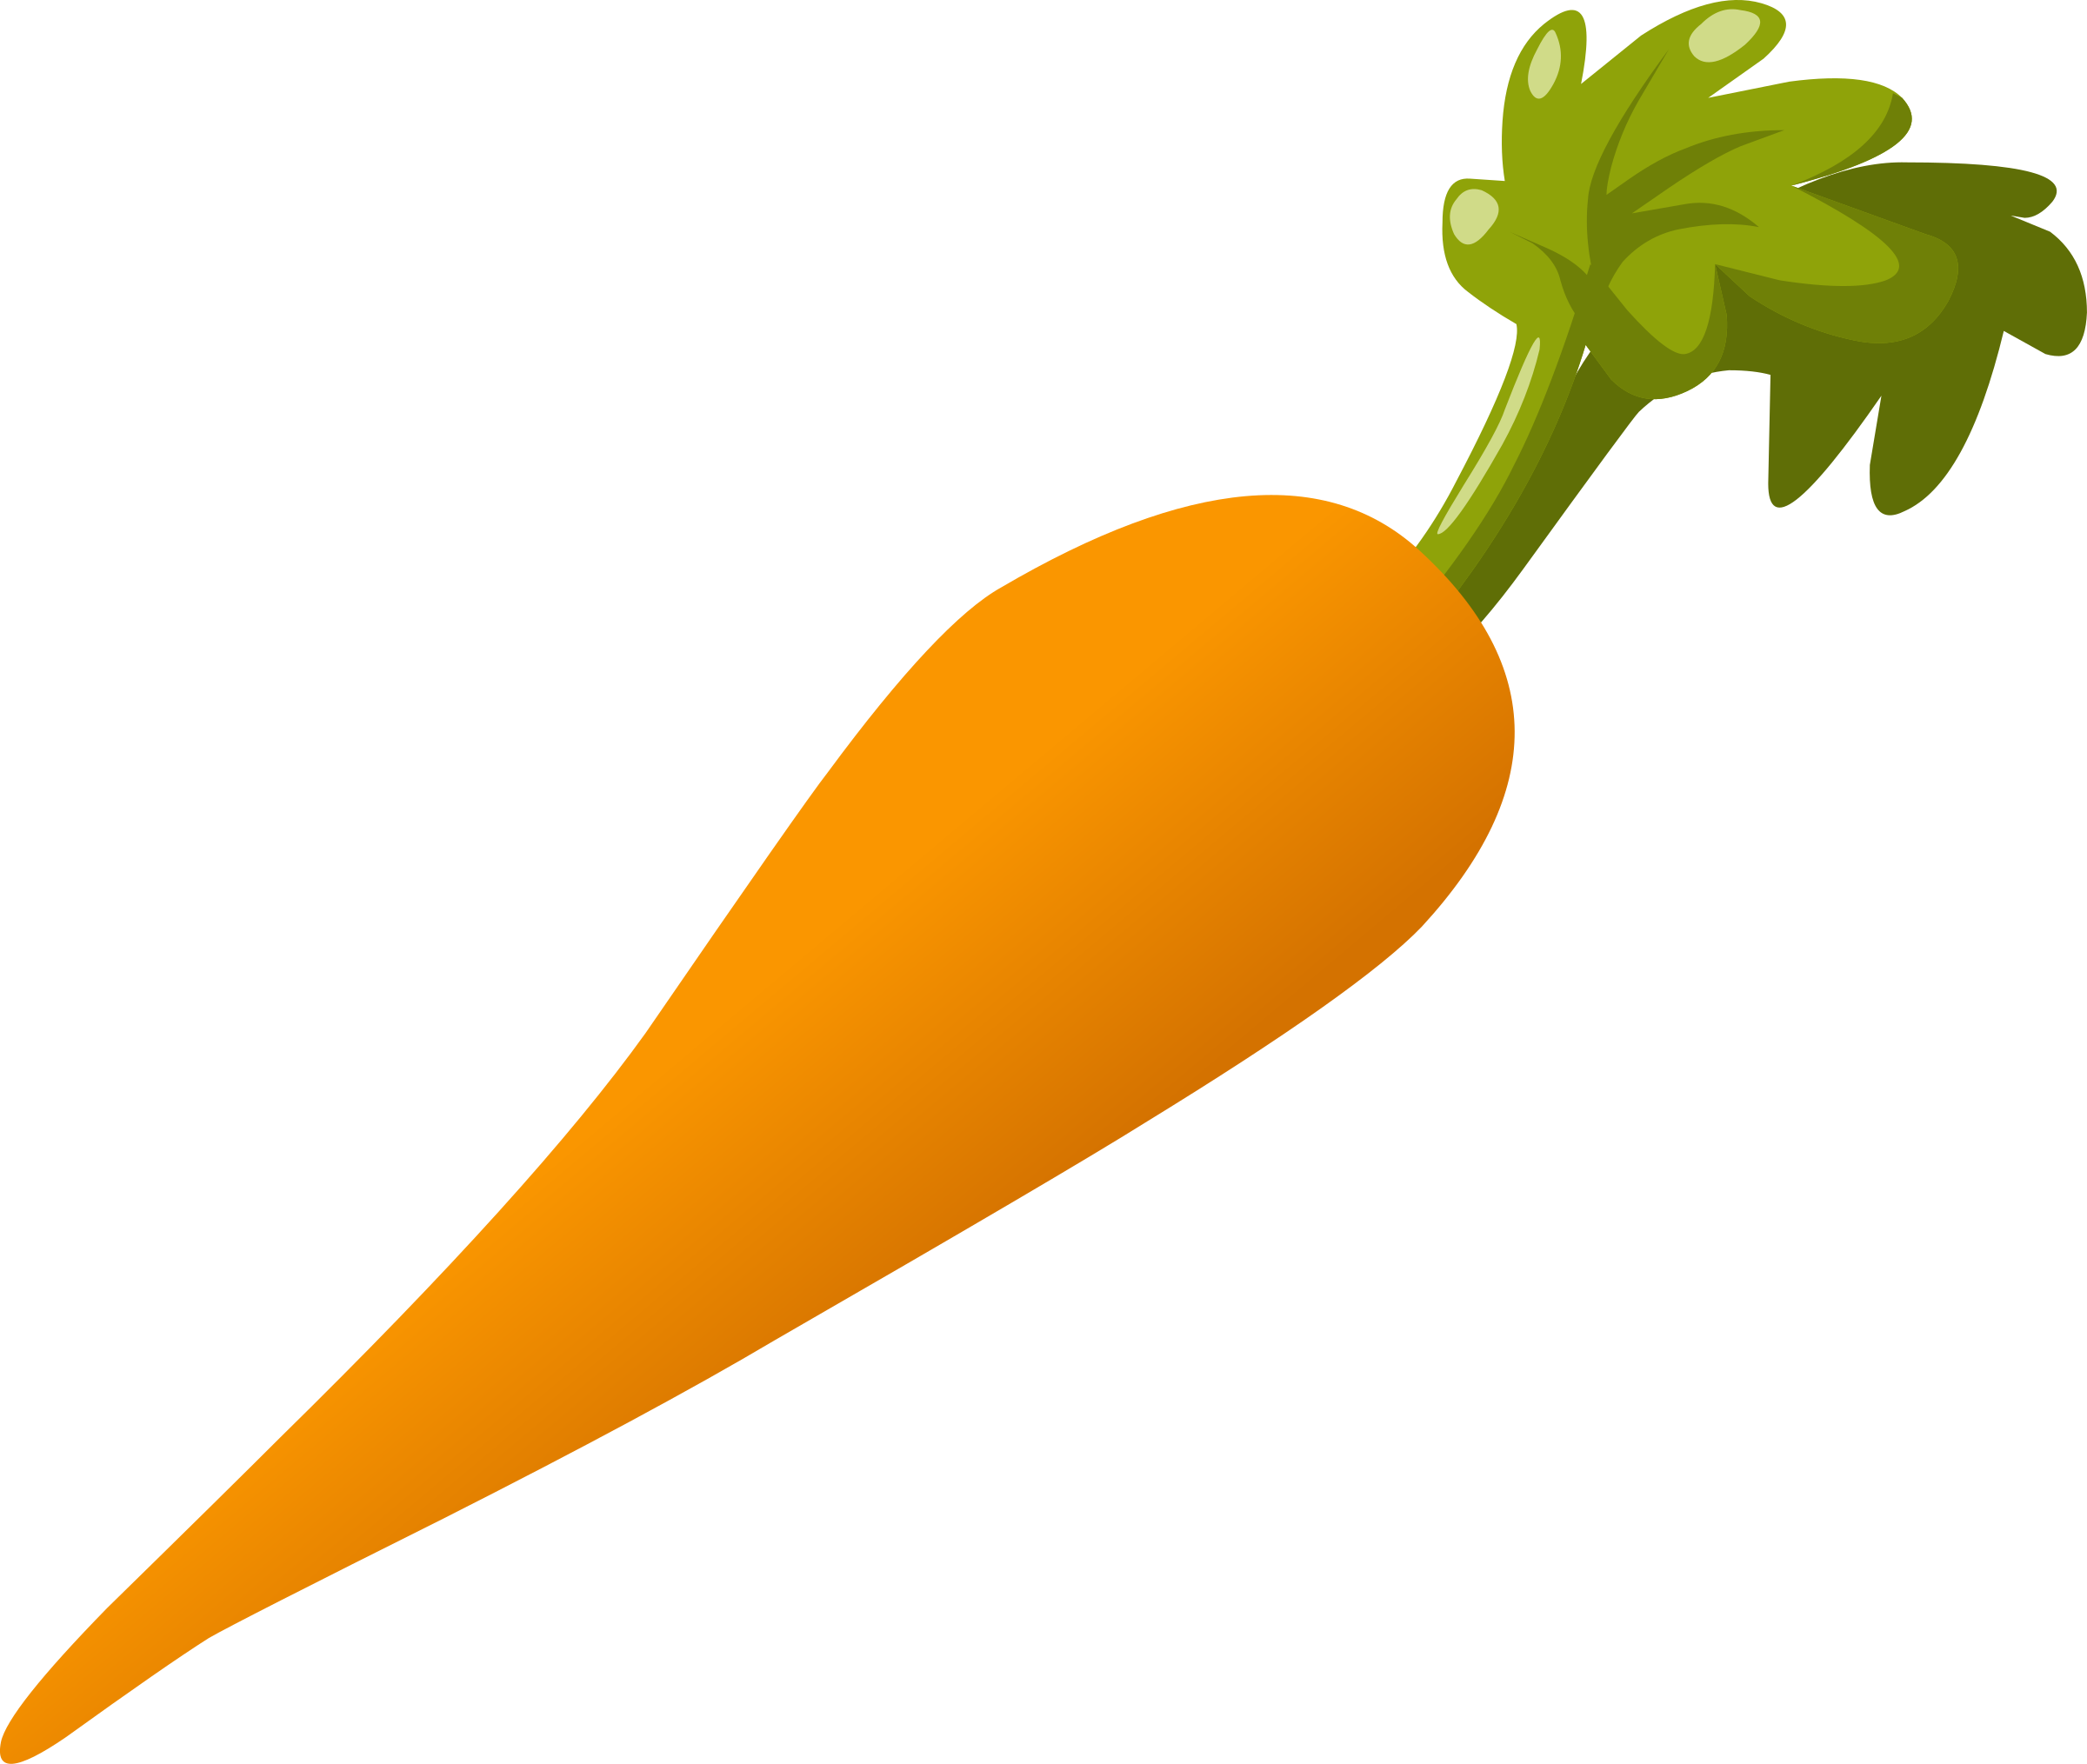 carrot clipart at getdrawings com free for personal use carrot rh getdrawings com